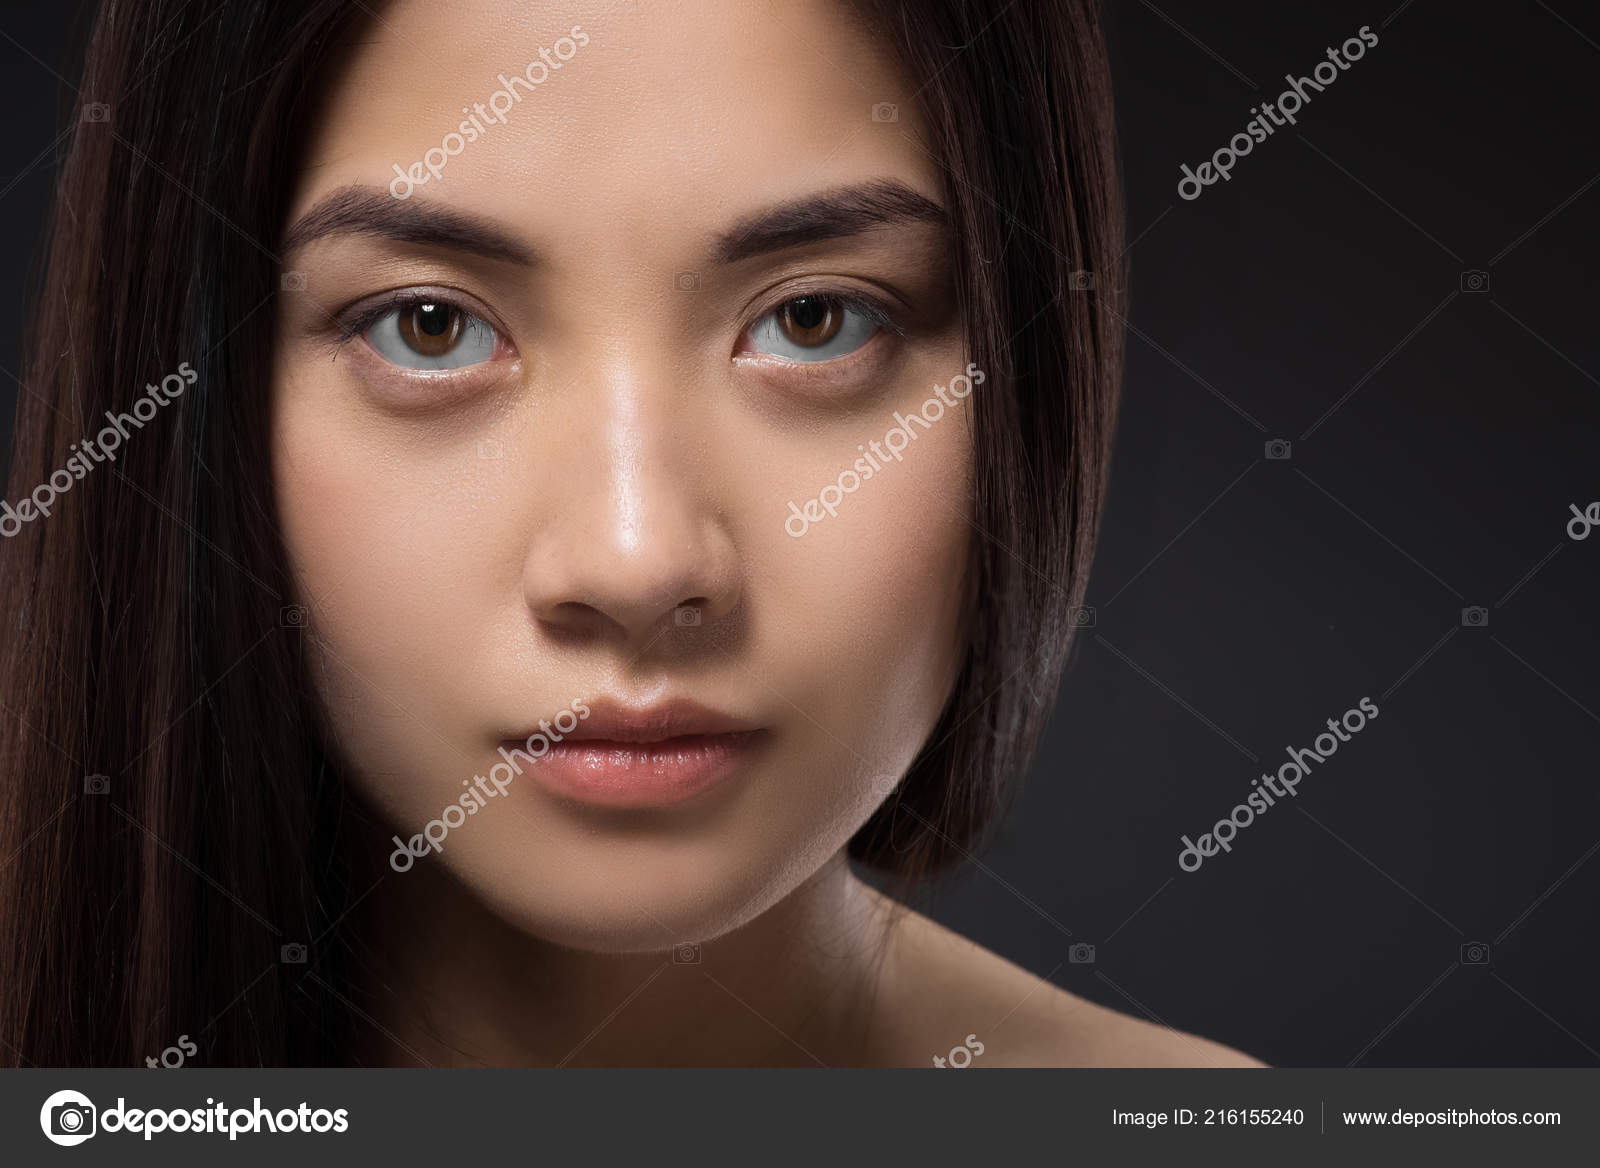 Can asian lady pretty